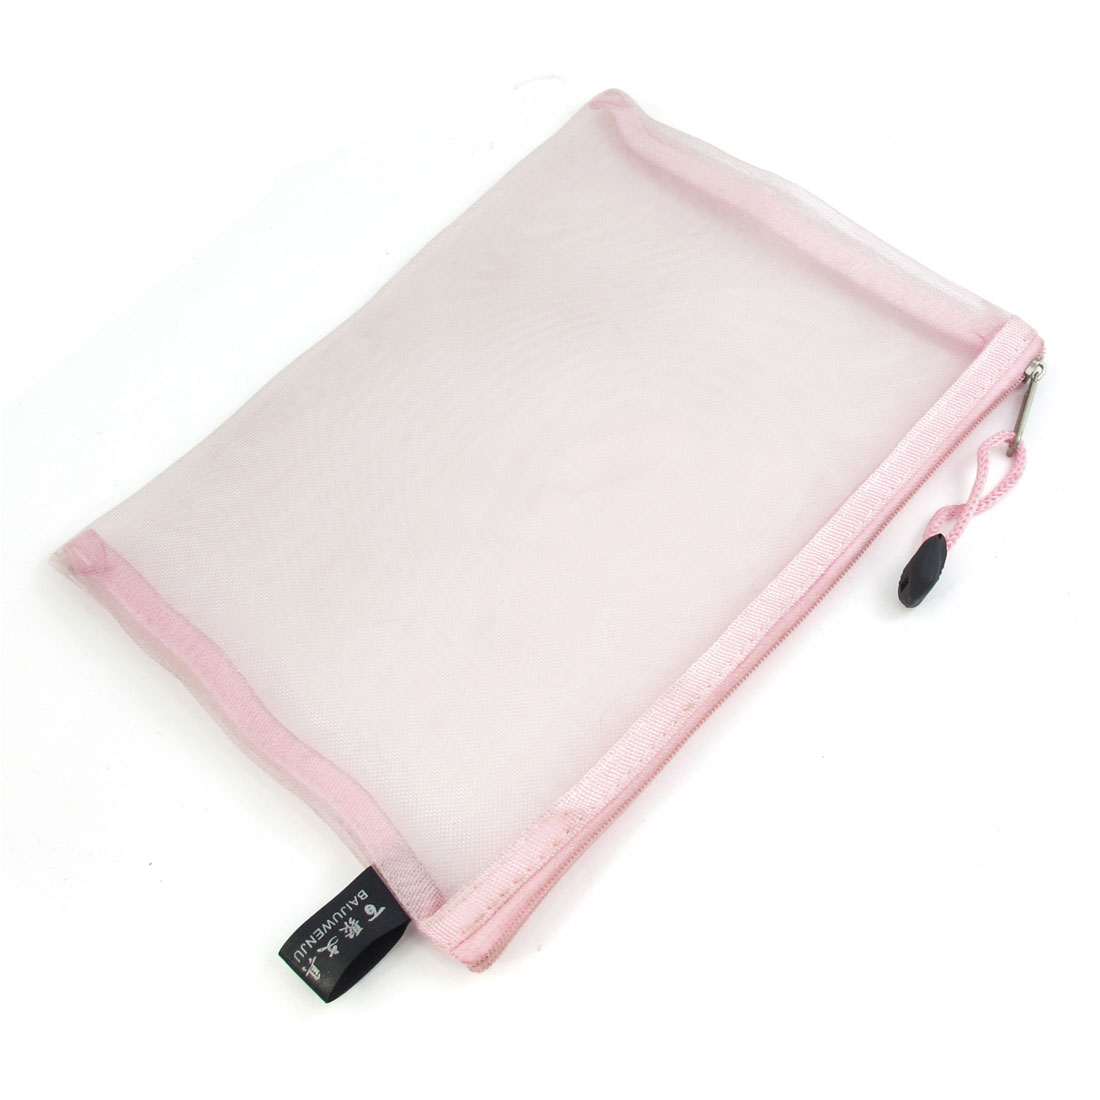 Zip Up Nylon Mesh A5 Paper Document File Pen Bag Holder Organizer Light Pink